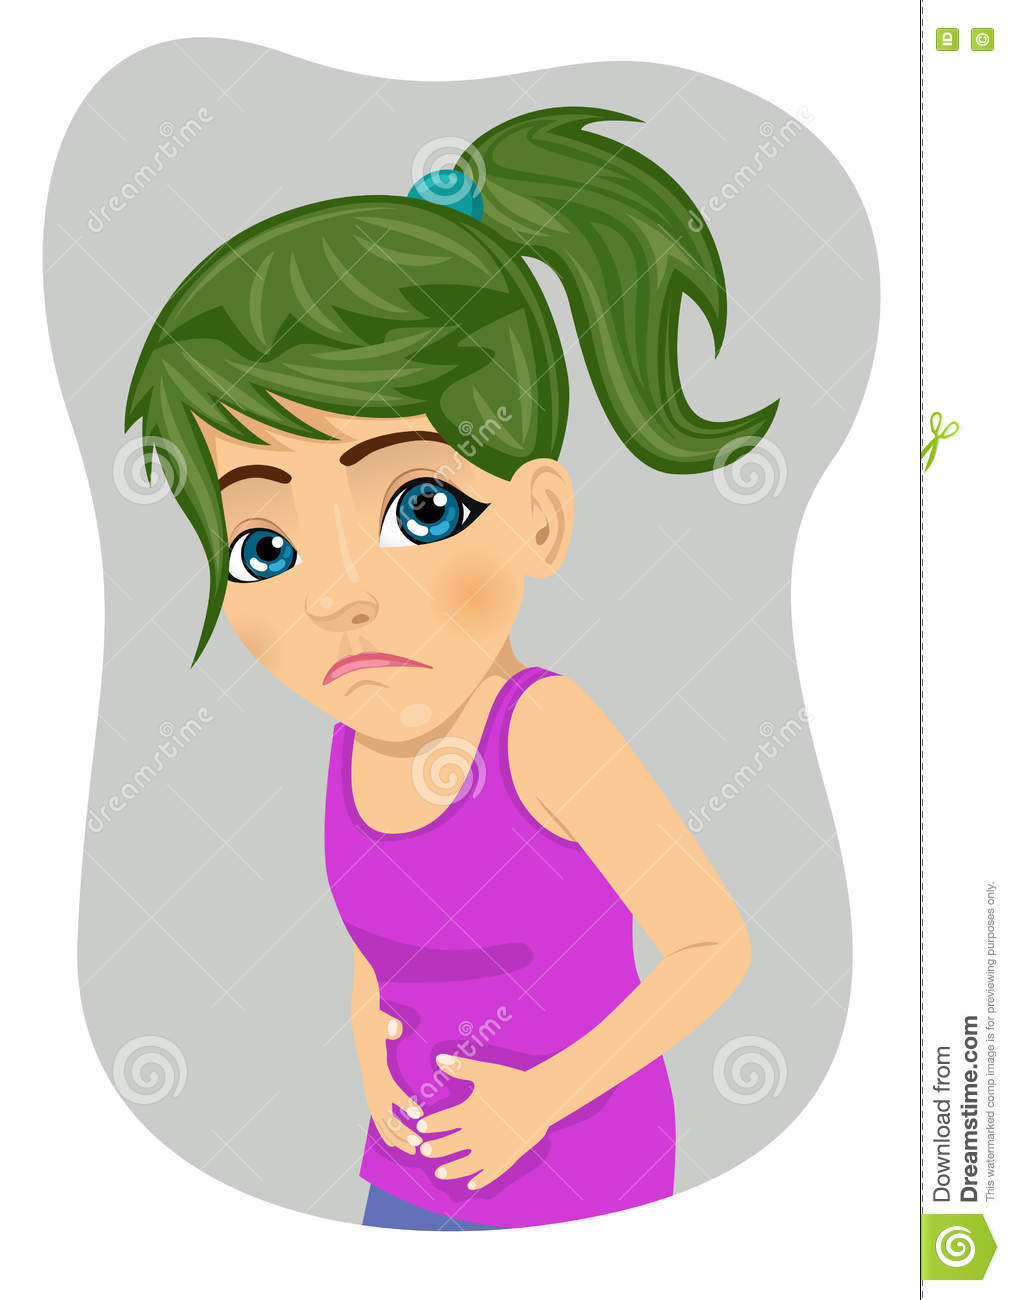 Nausea clipart 7 » Clipart Station.